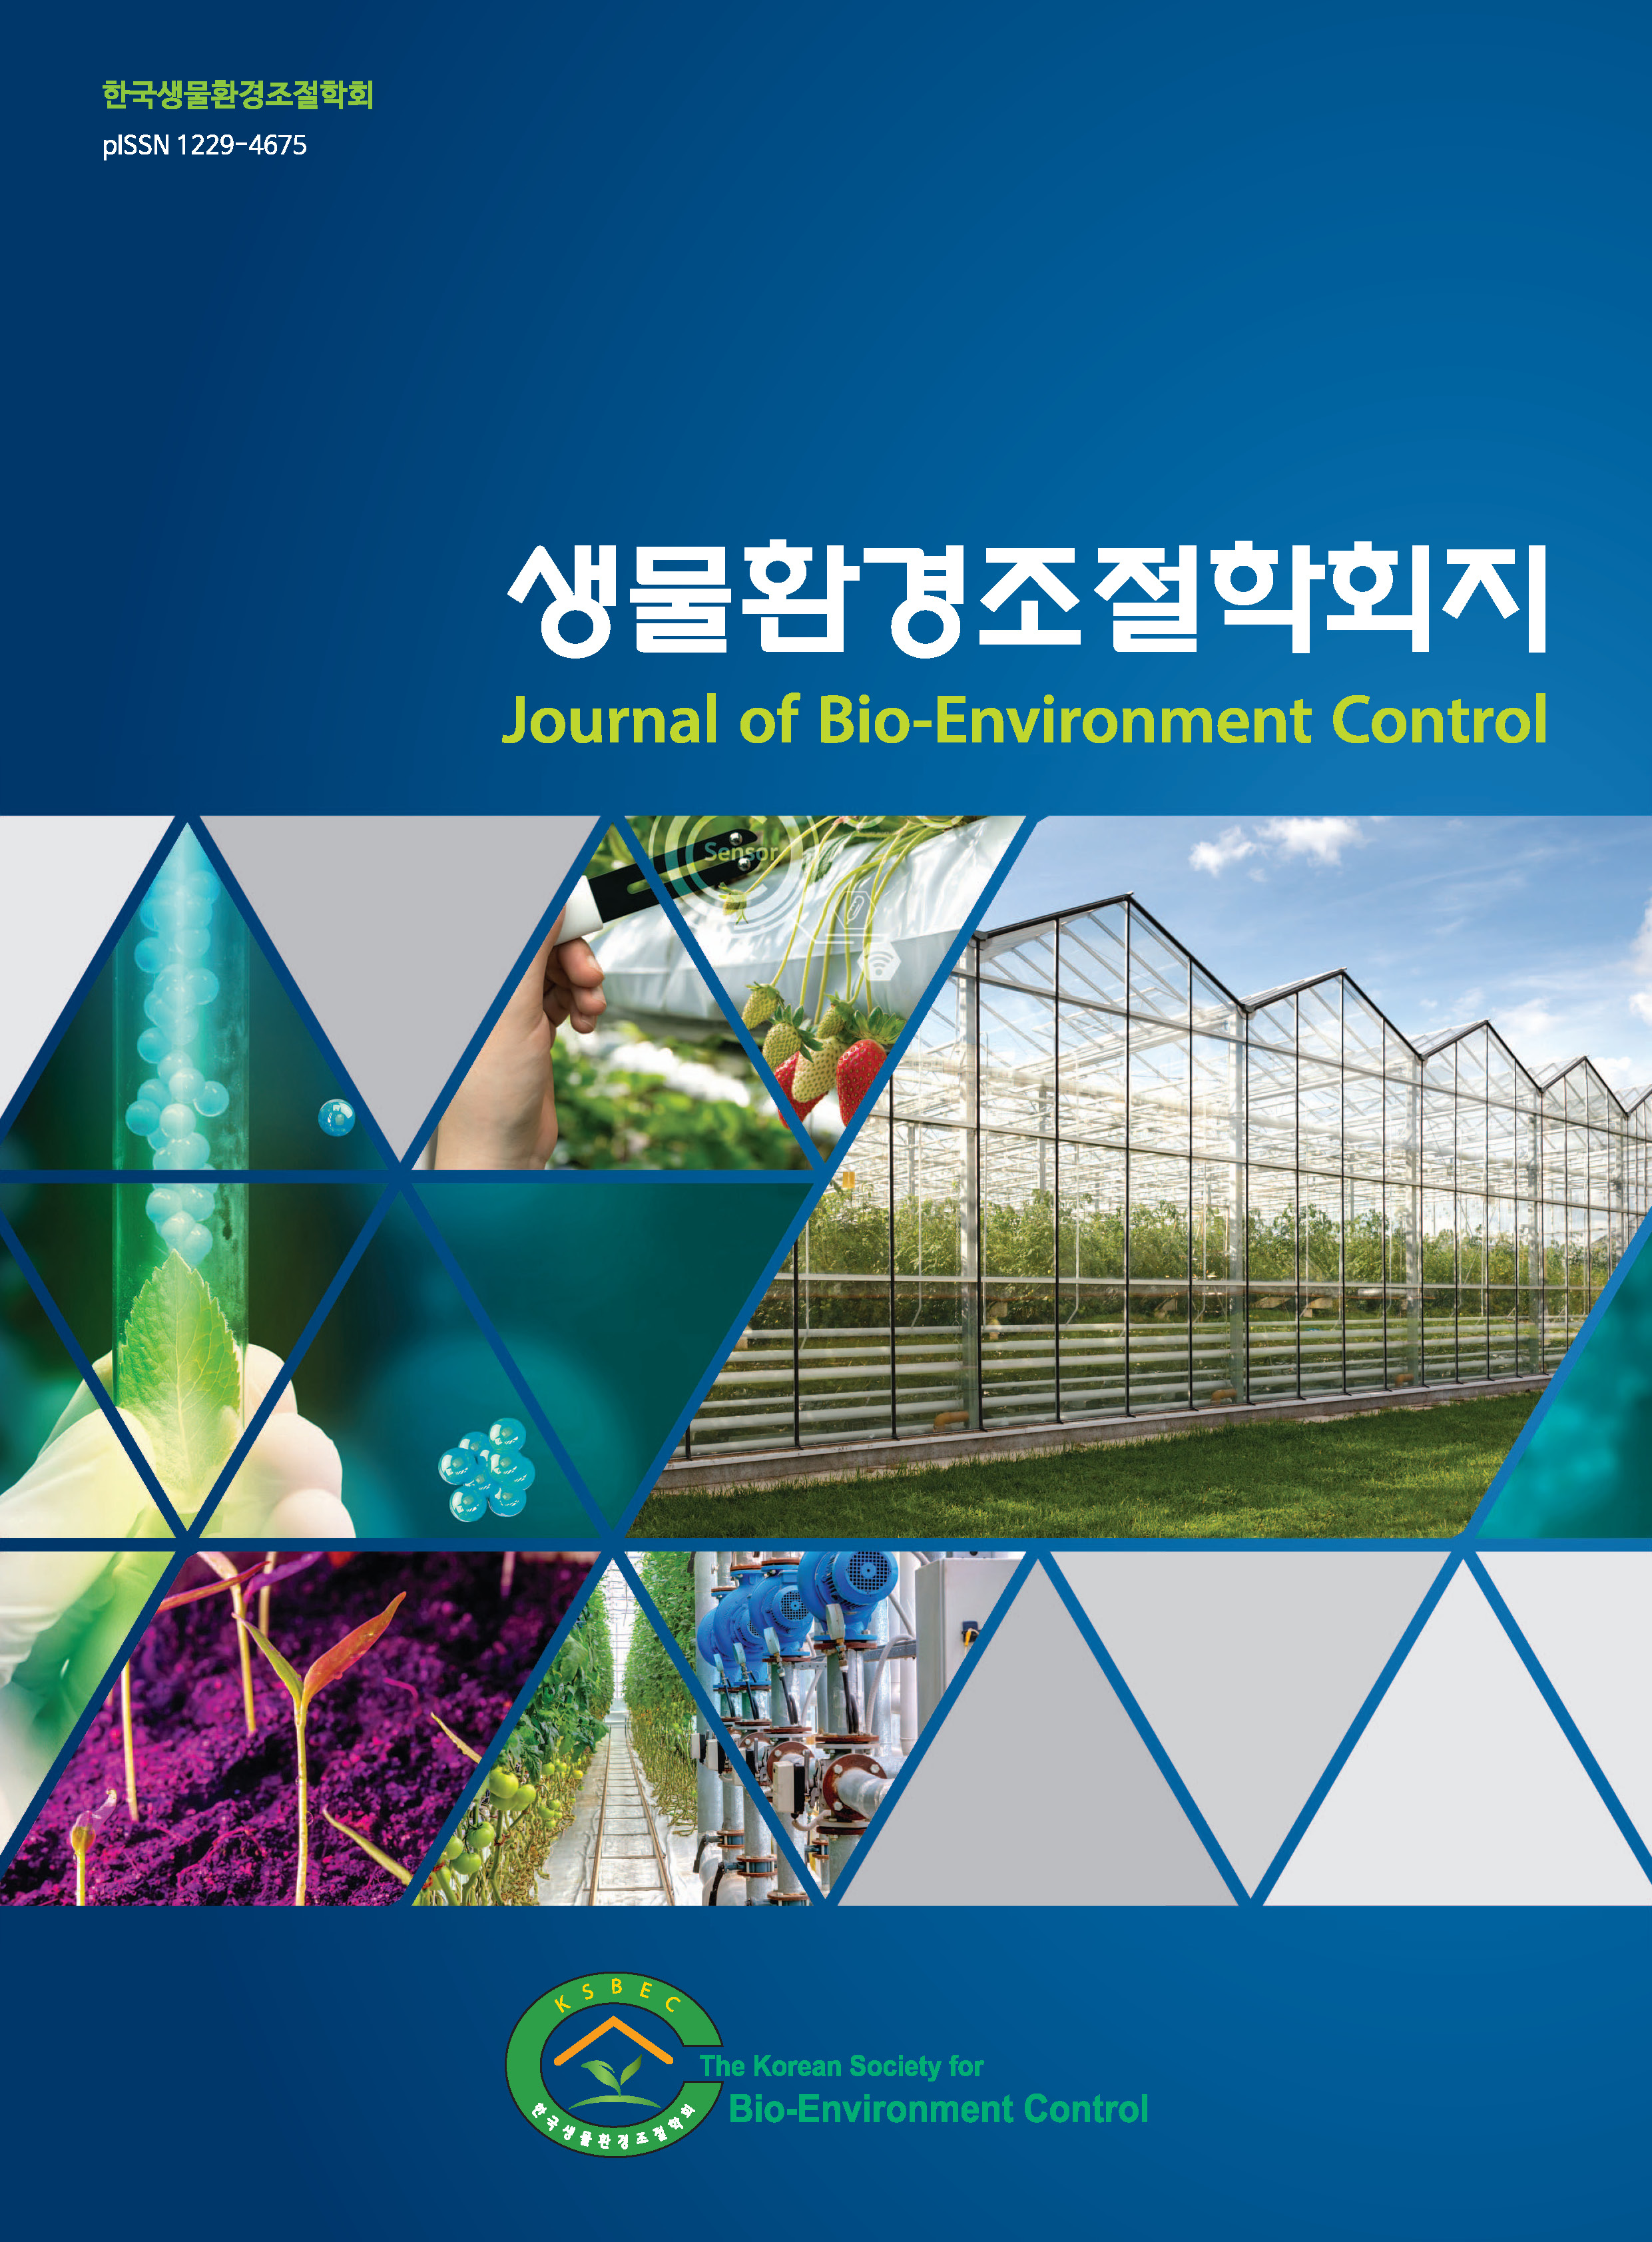 Journal of Bio-Environment Control